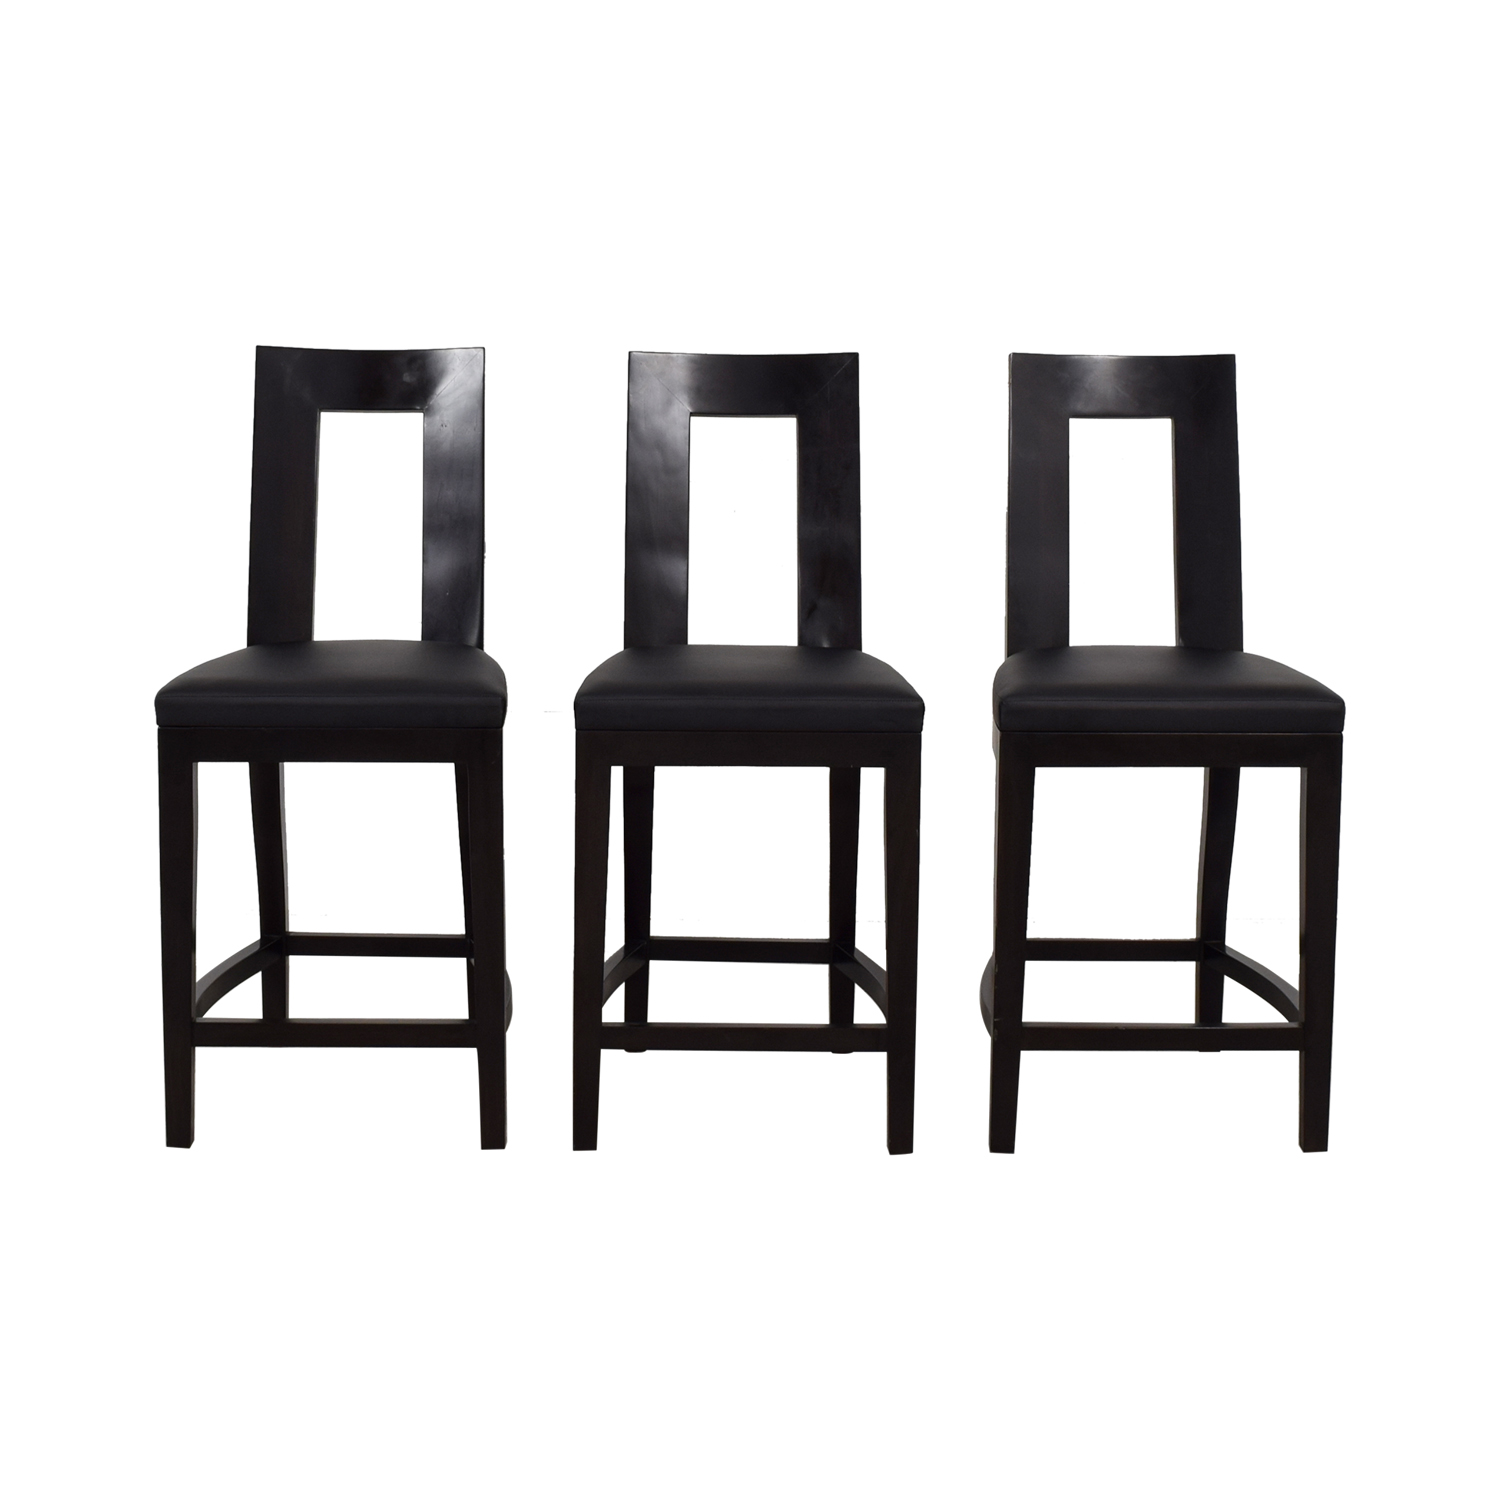 Furniture Masters Furniture Masters Black Bar Stools used